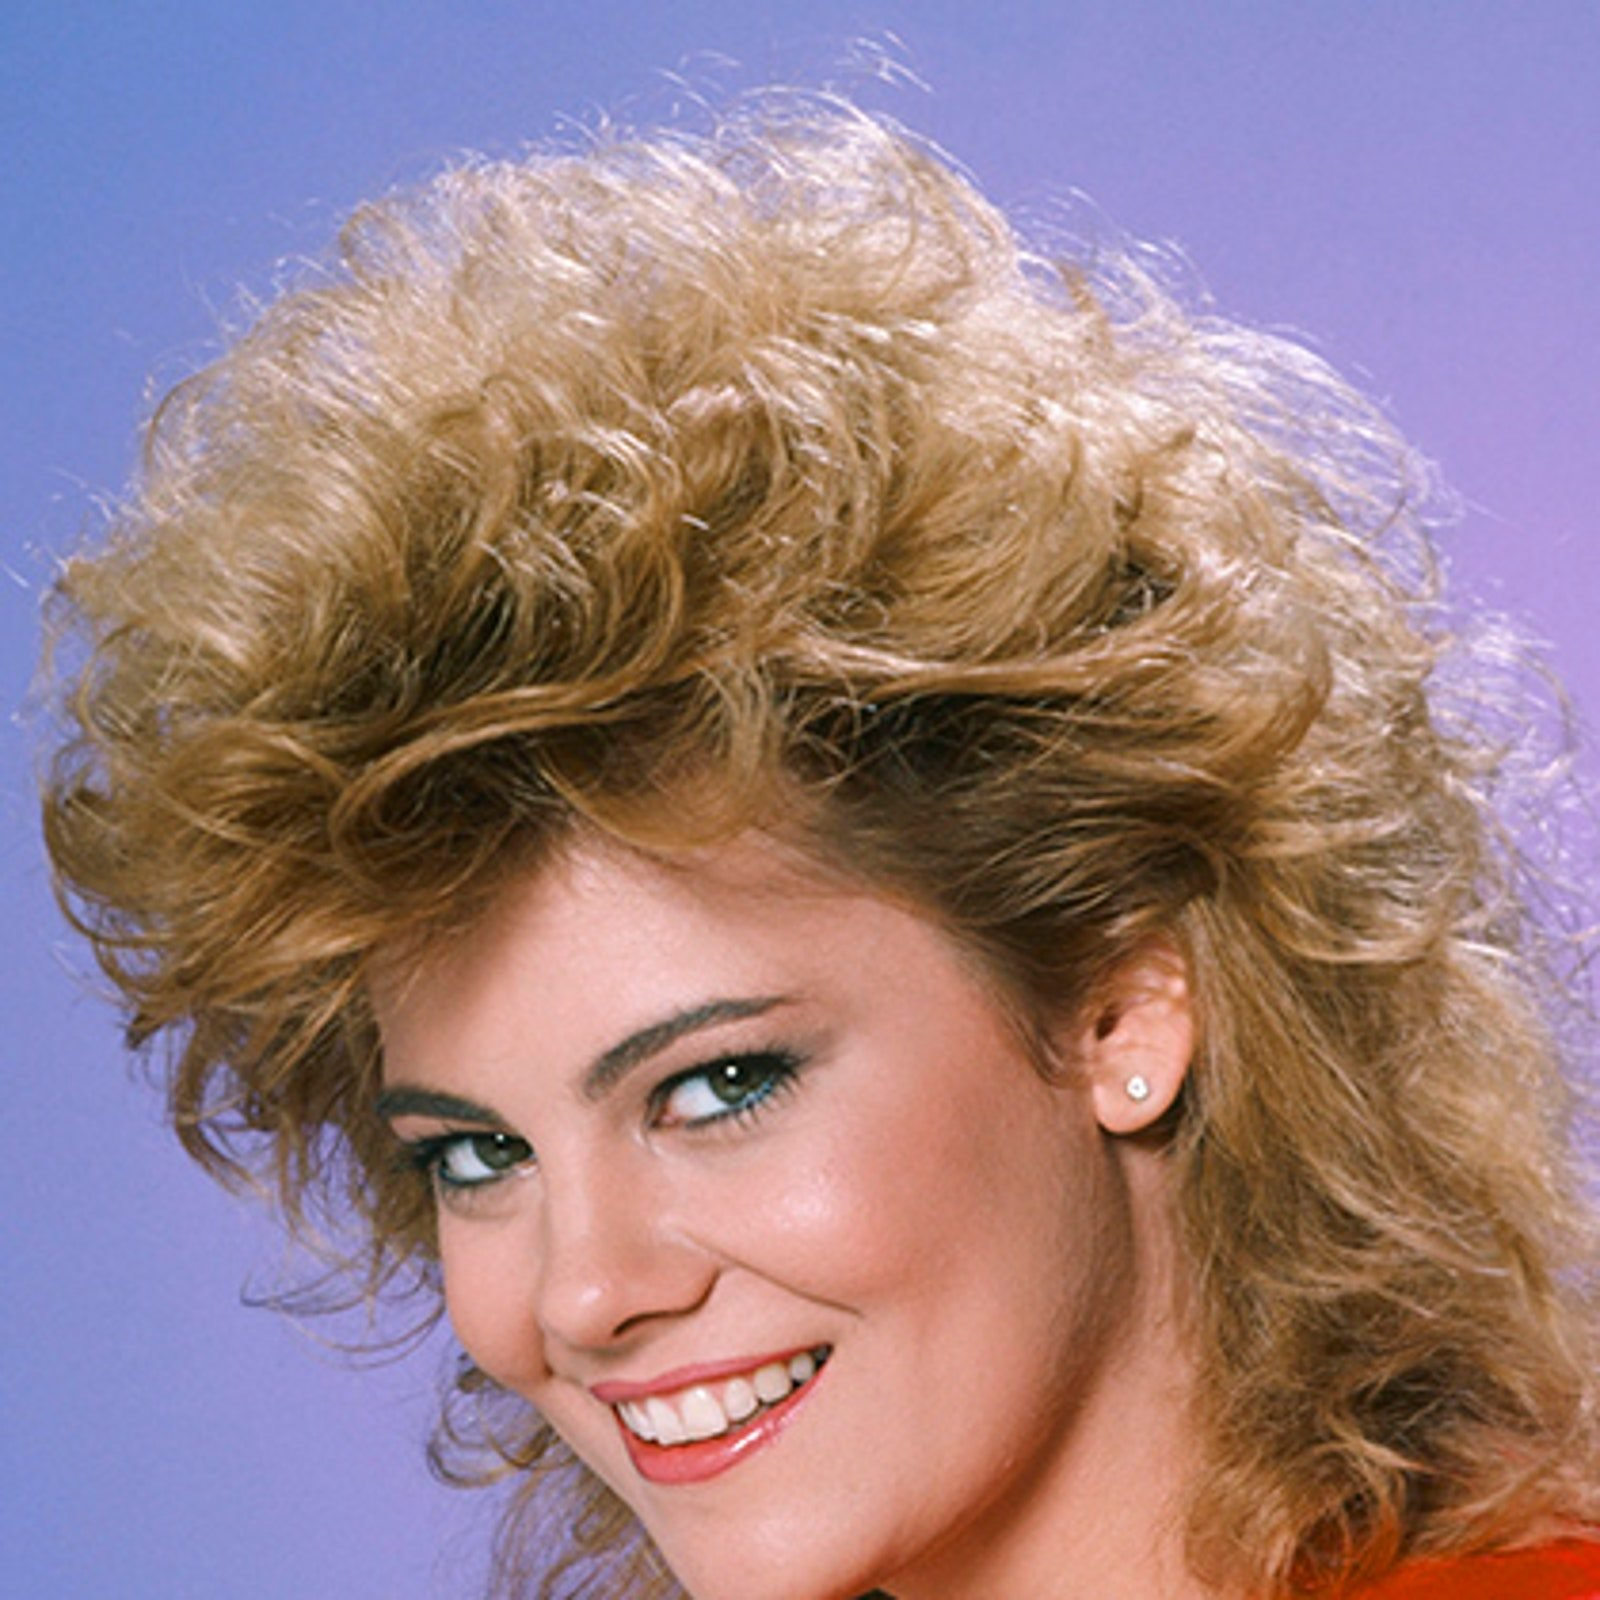 Free 13 Hairstyles You Totally Wore In The 80S Allure Wallpaper